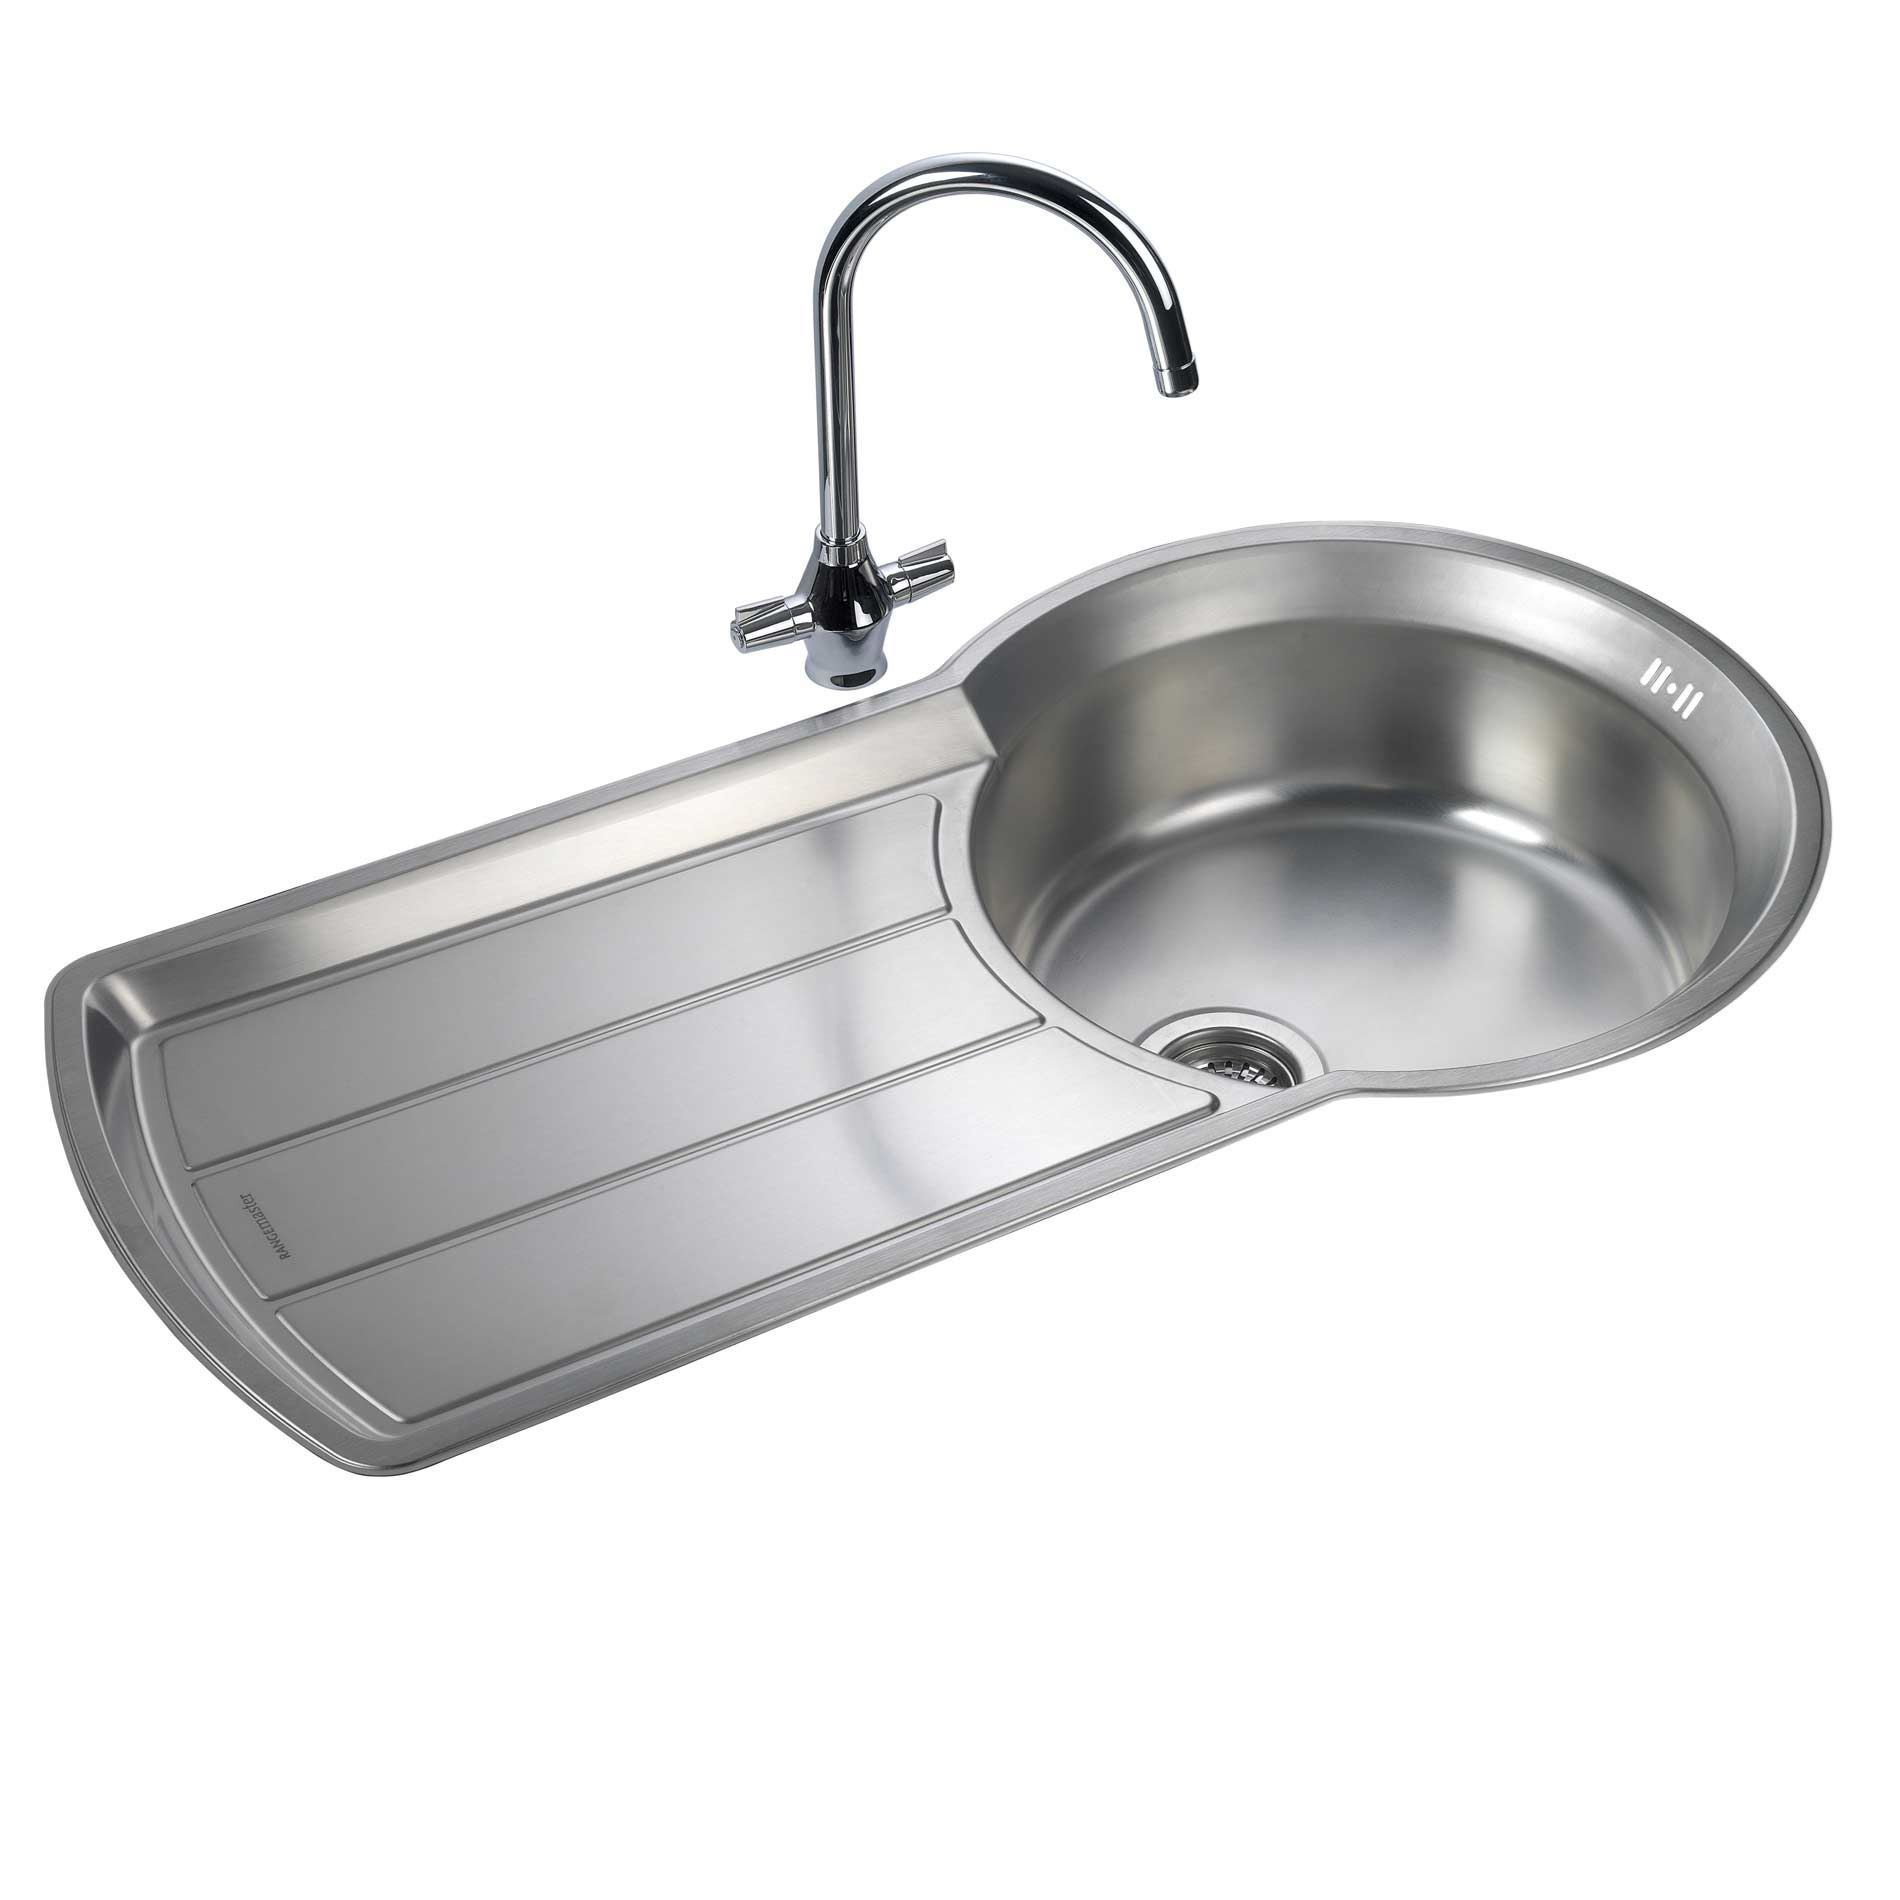 Picture of Keyhole KY10001 Stainless Steel Sink